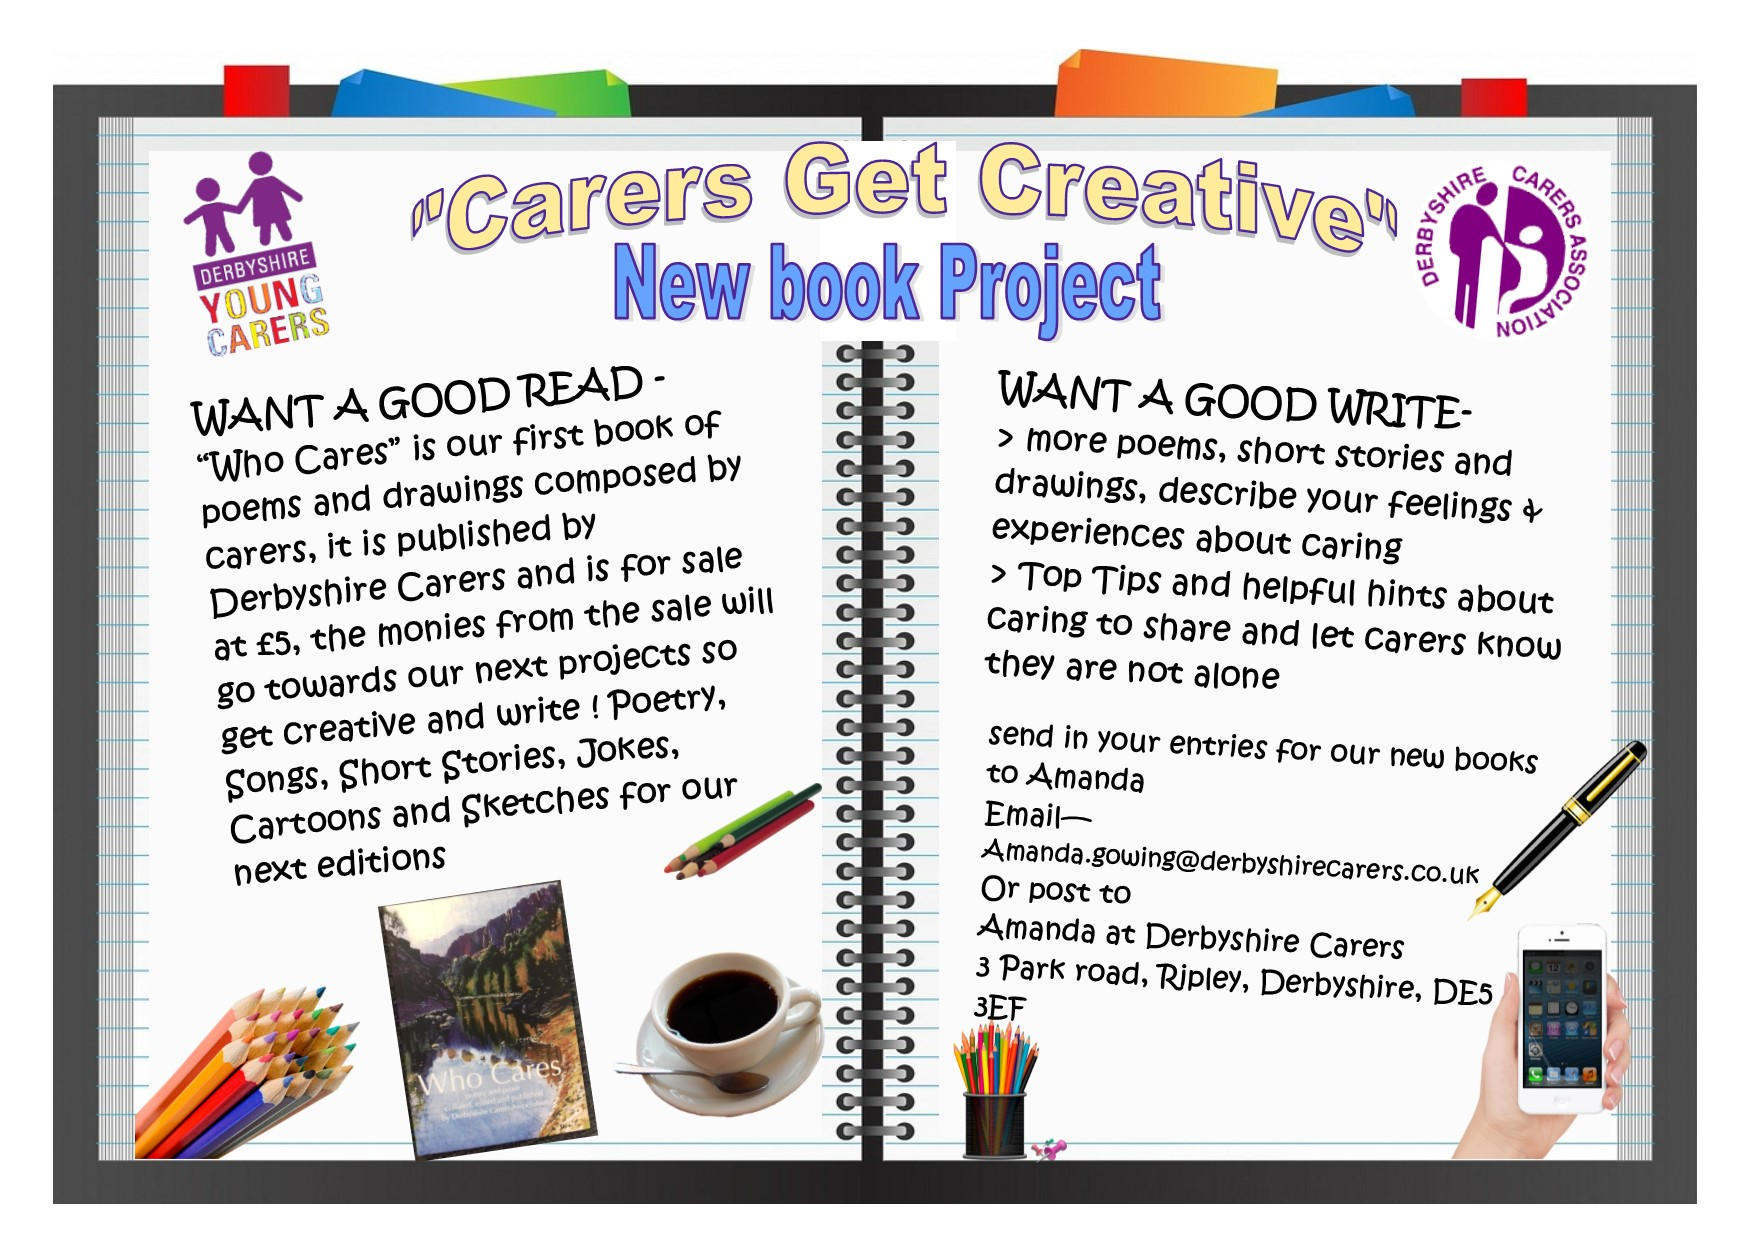 New book projects flyer.jpg (453 KB)